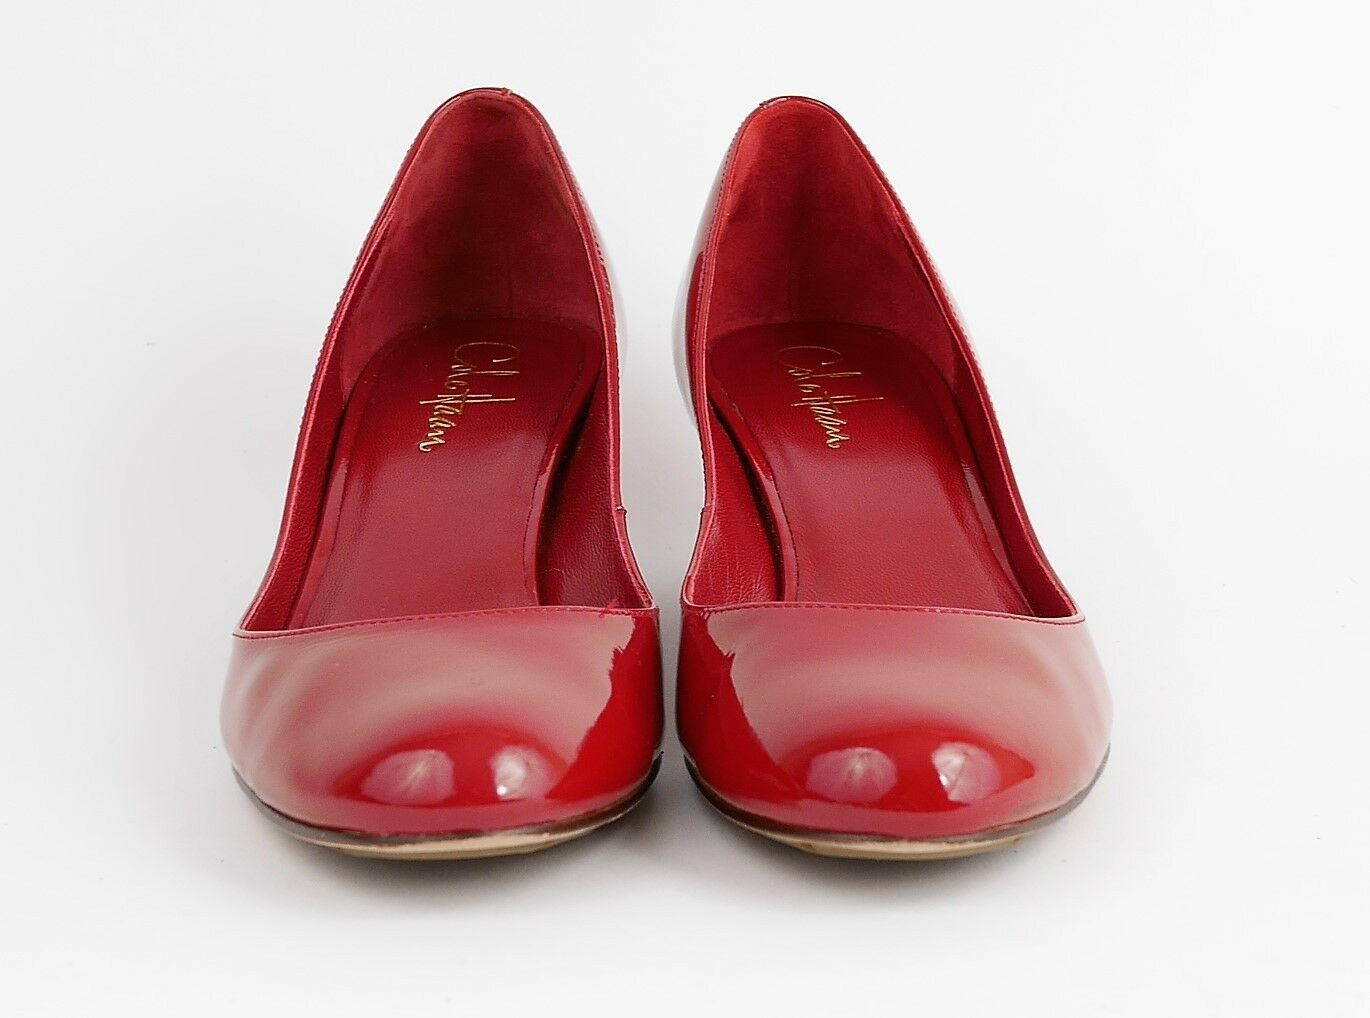 COLE HAAN Women' Women' Women' 6.5 - RED PATENT LEATHER CLOSED TOE WEDGE HIGH HEELS LOW PUMPS 79c024